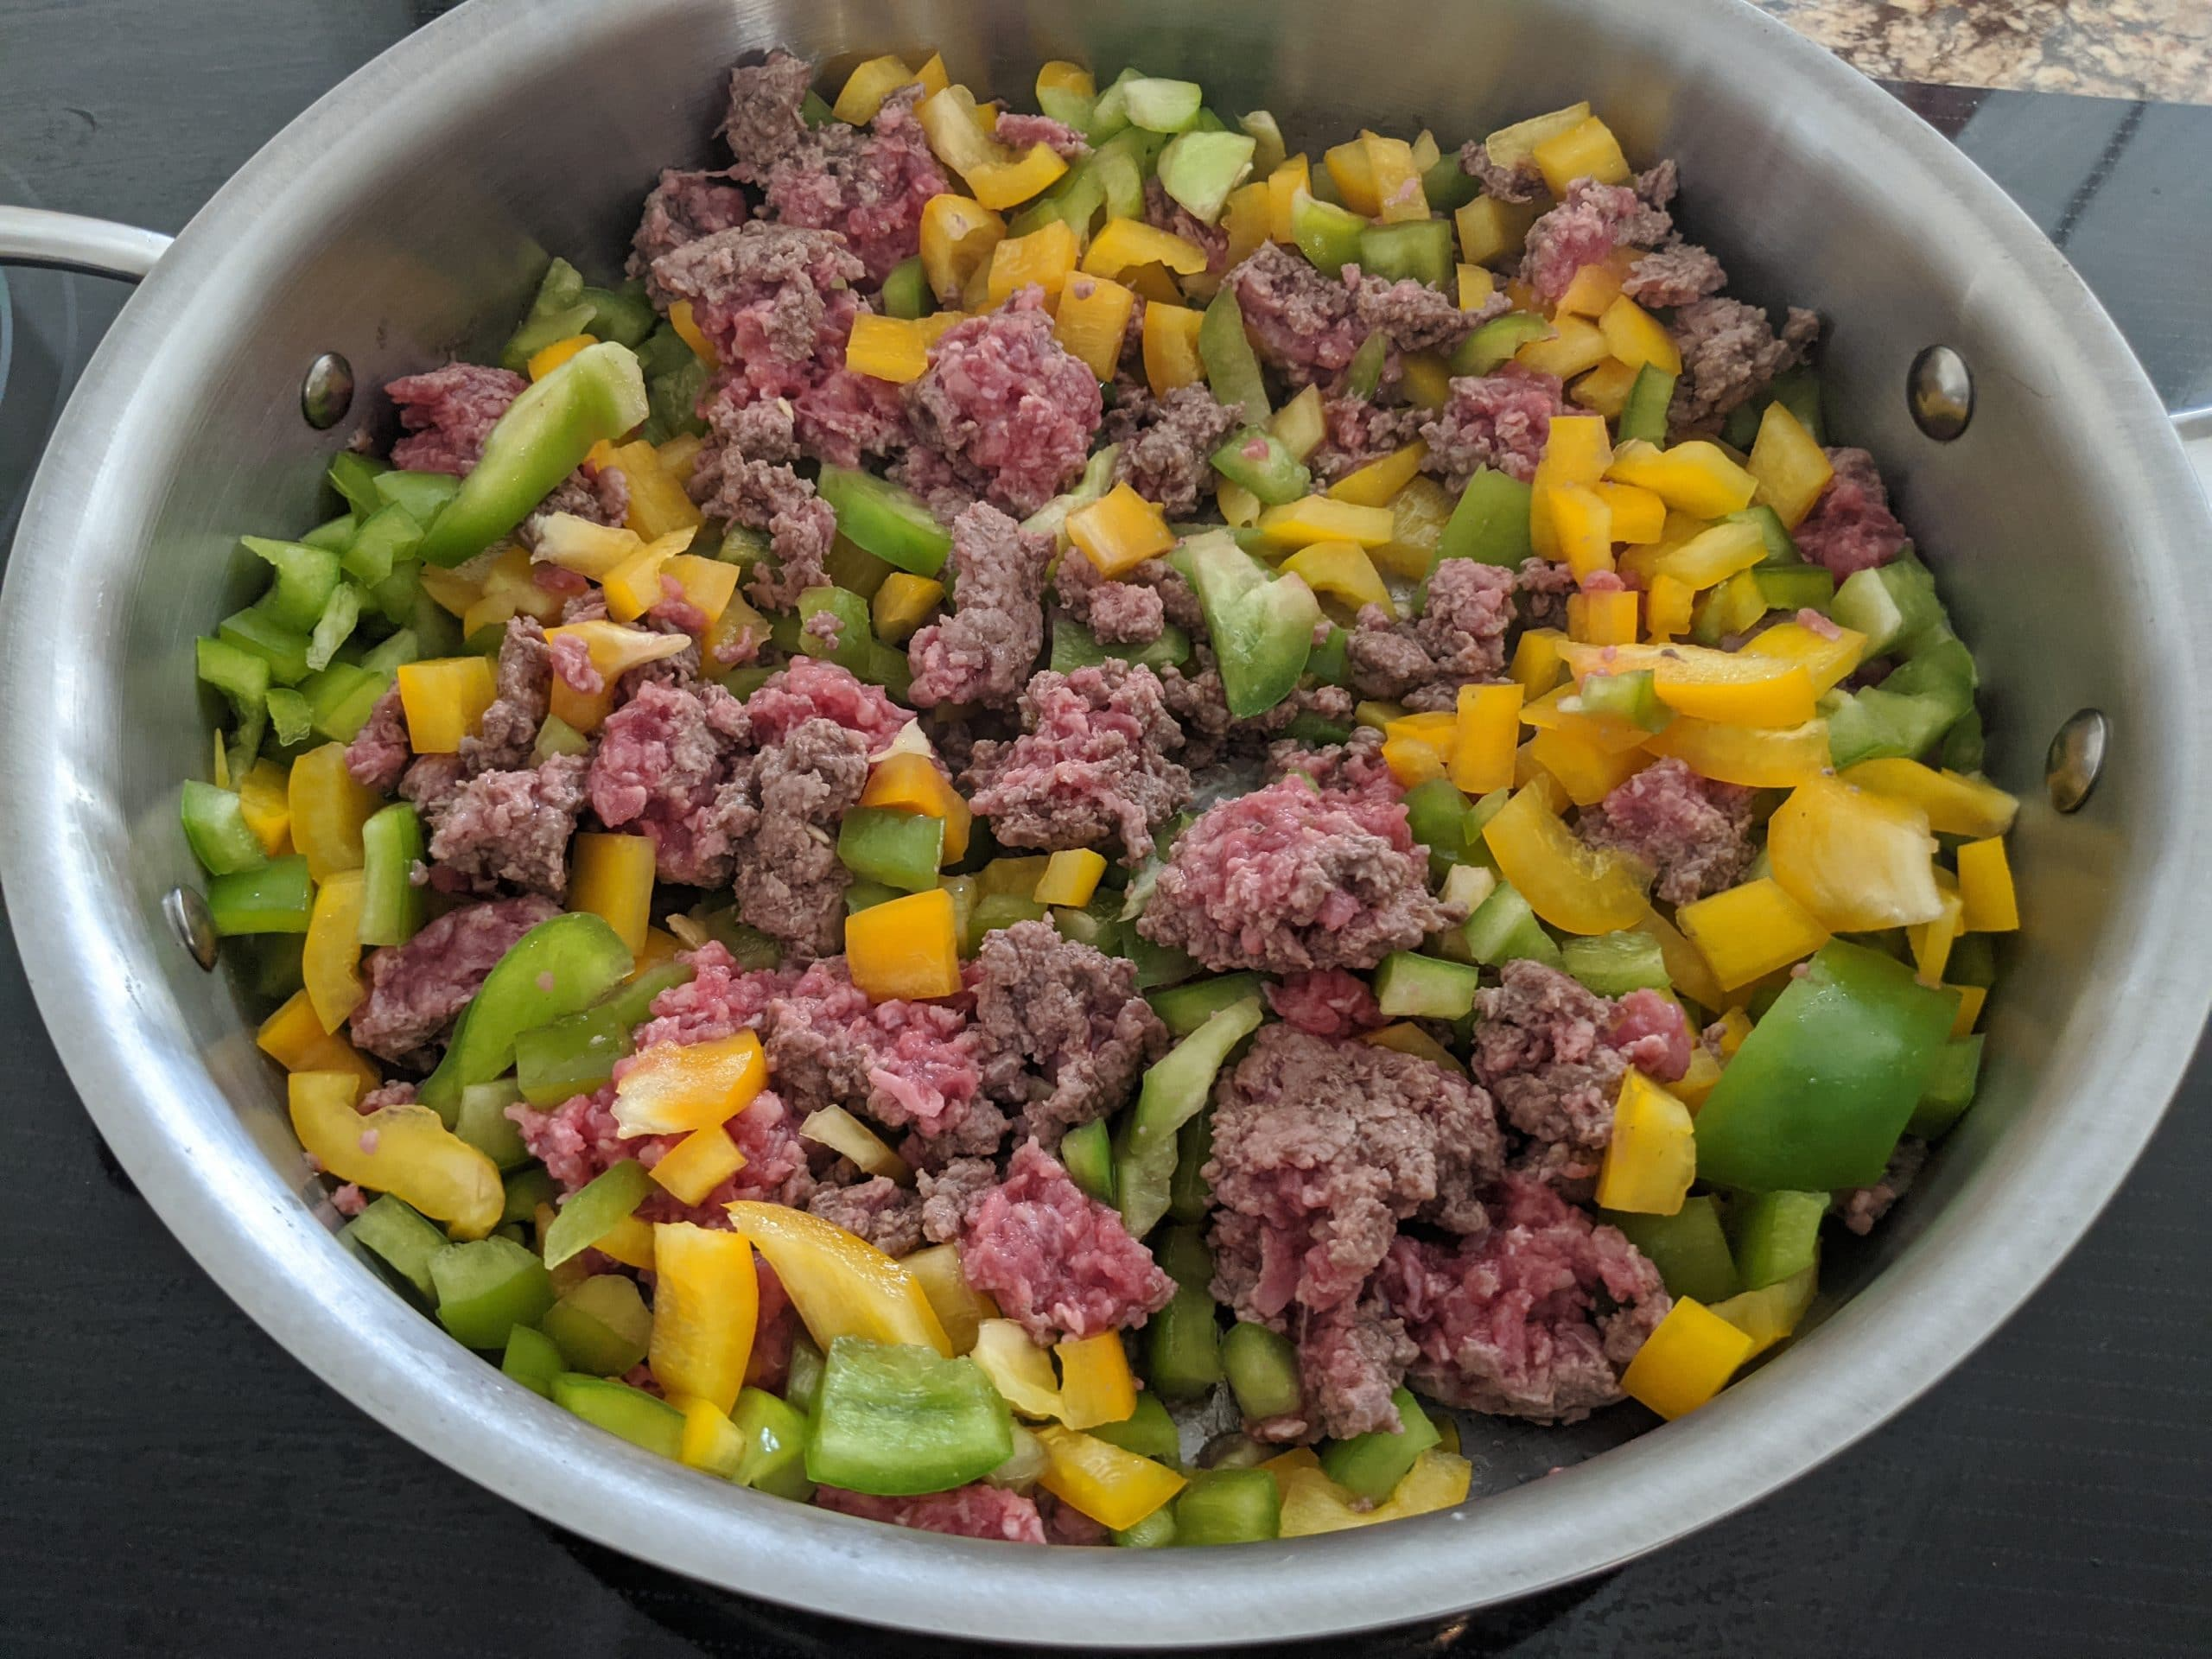 uncooked ground beef, peppers and rice cauliflower in the skillet